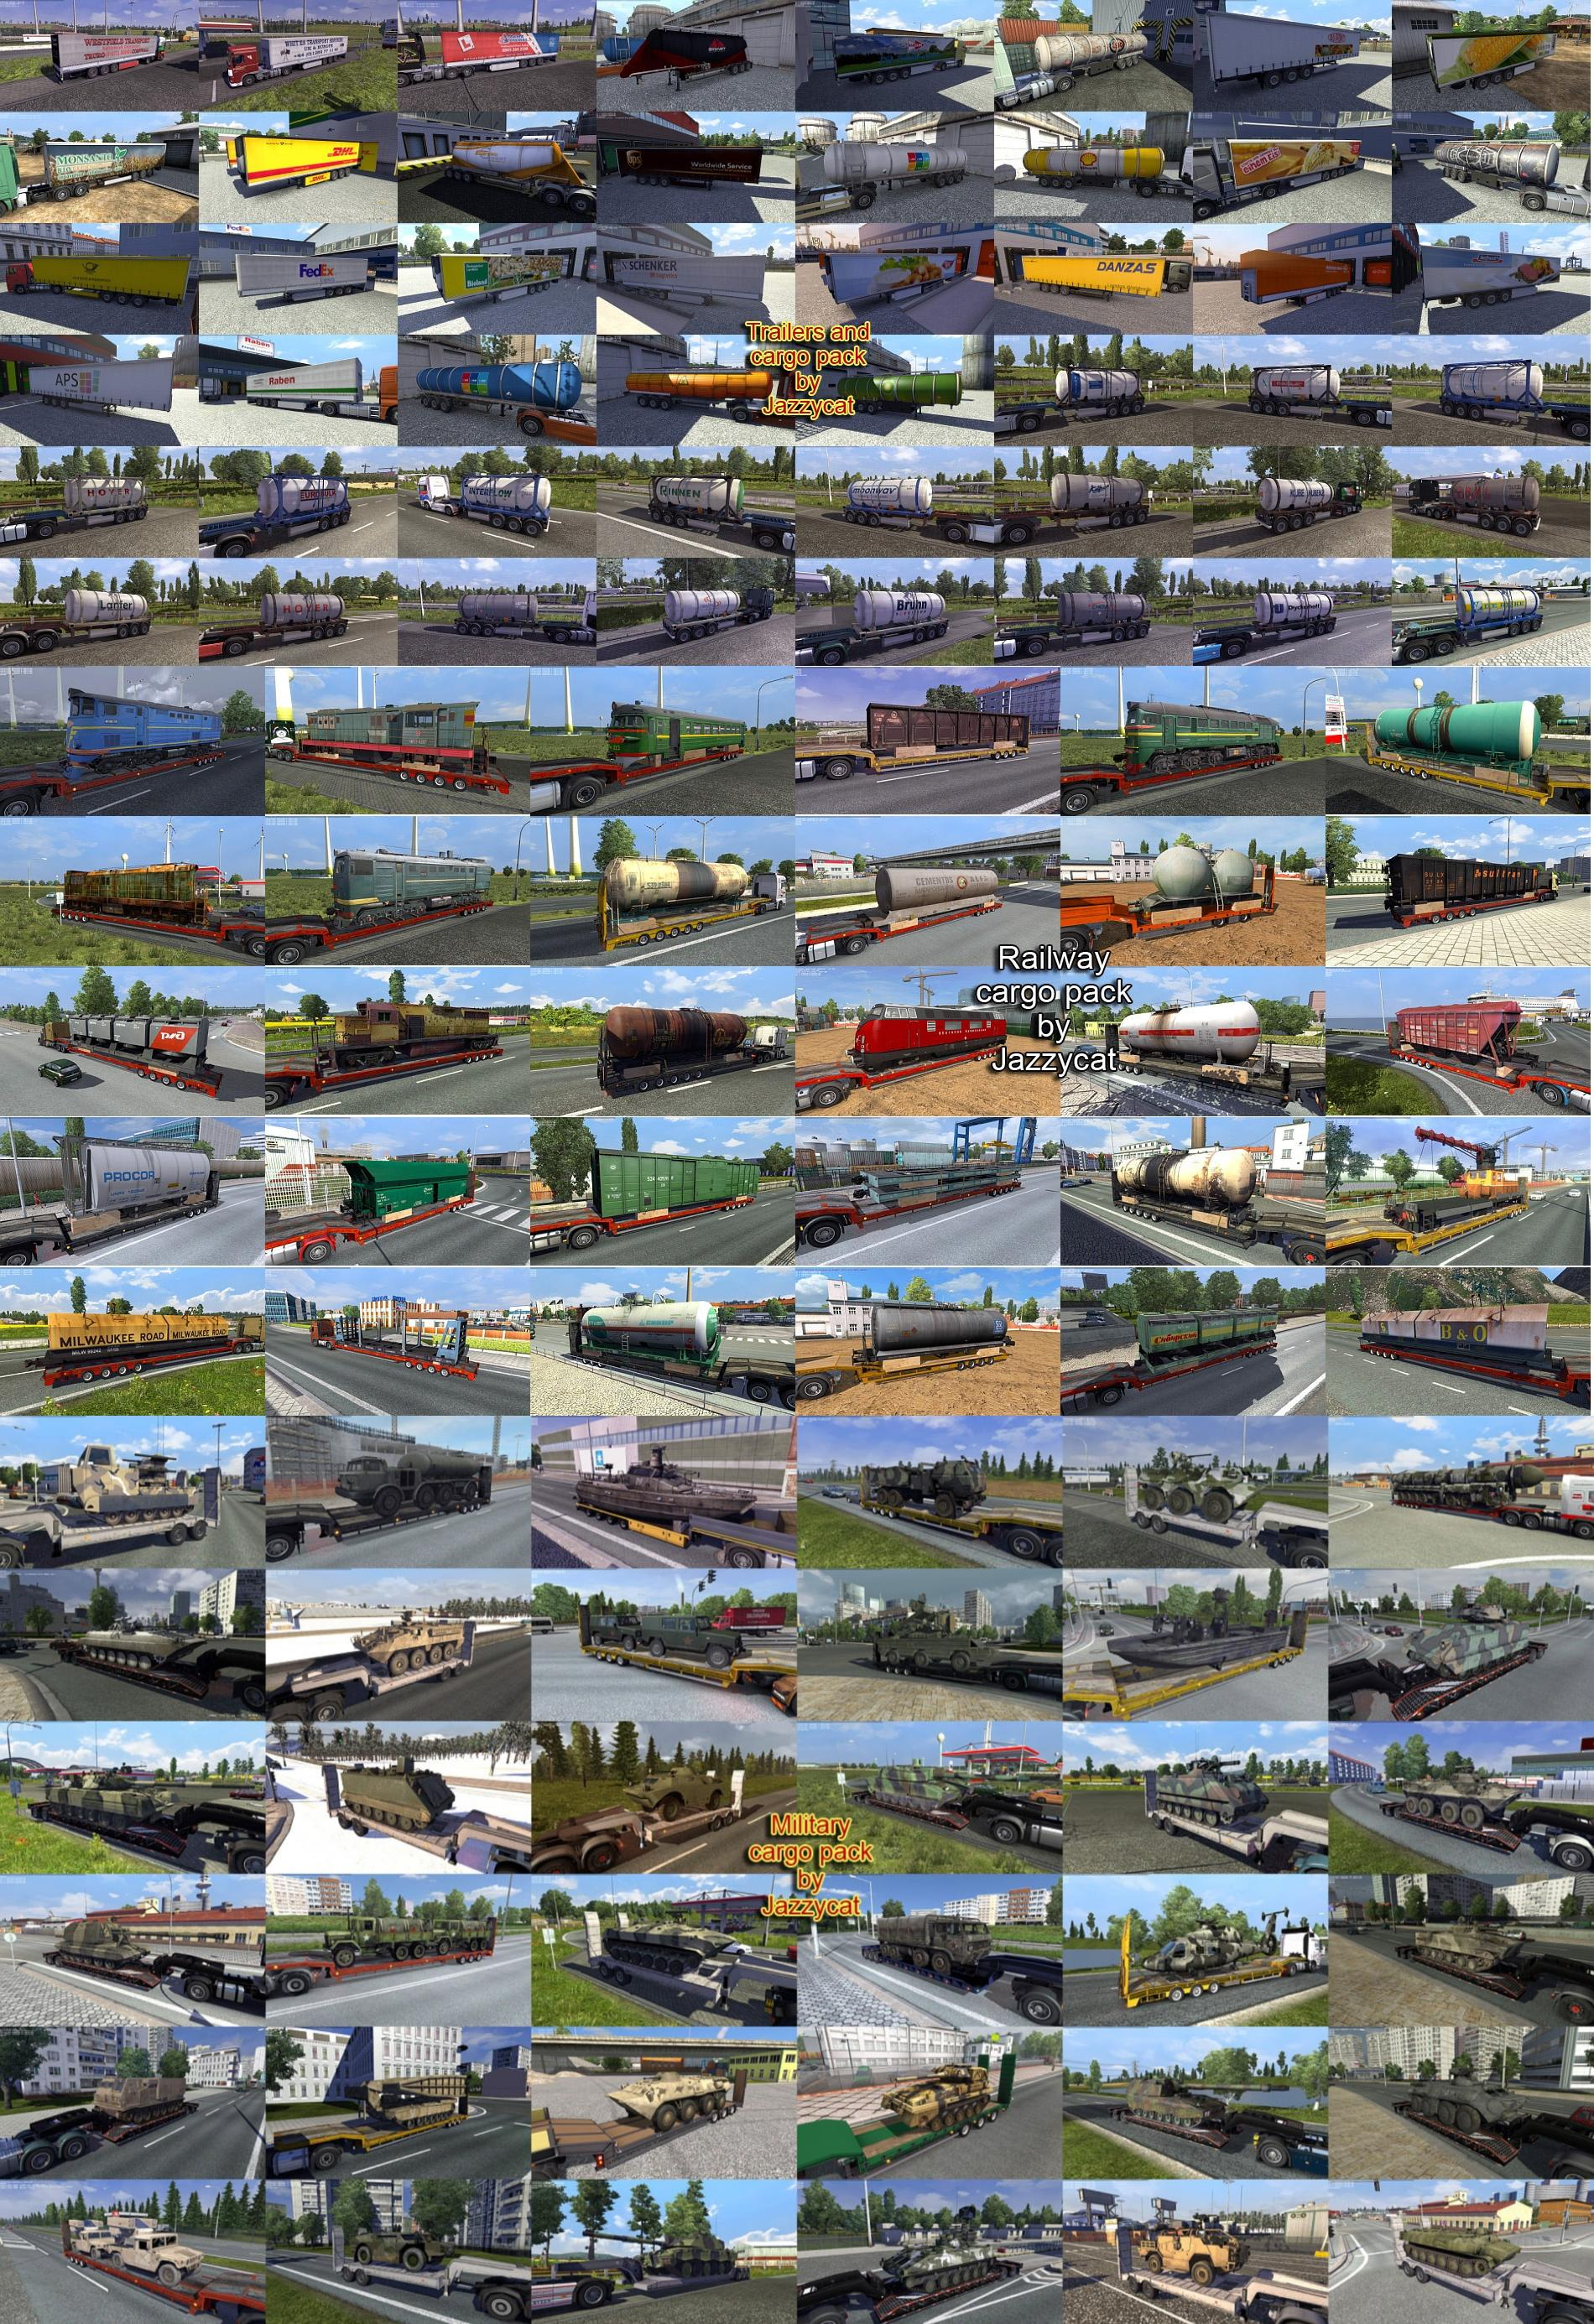 addons-for-the-trailers-cargo-packs-v3-5-v1-7-v1-61-from-jazzycat-1-21_1